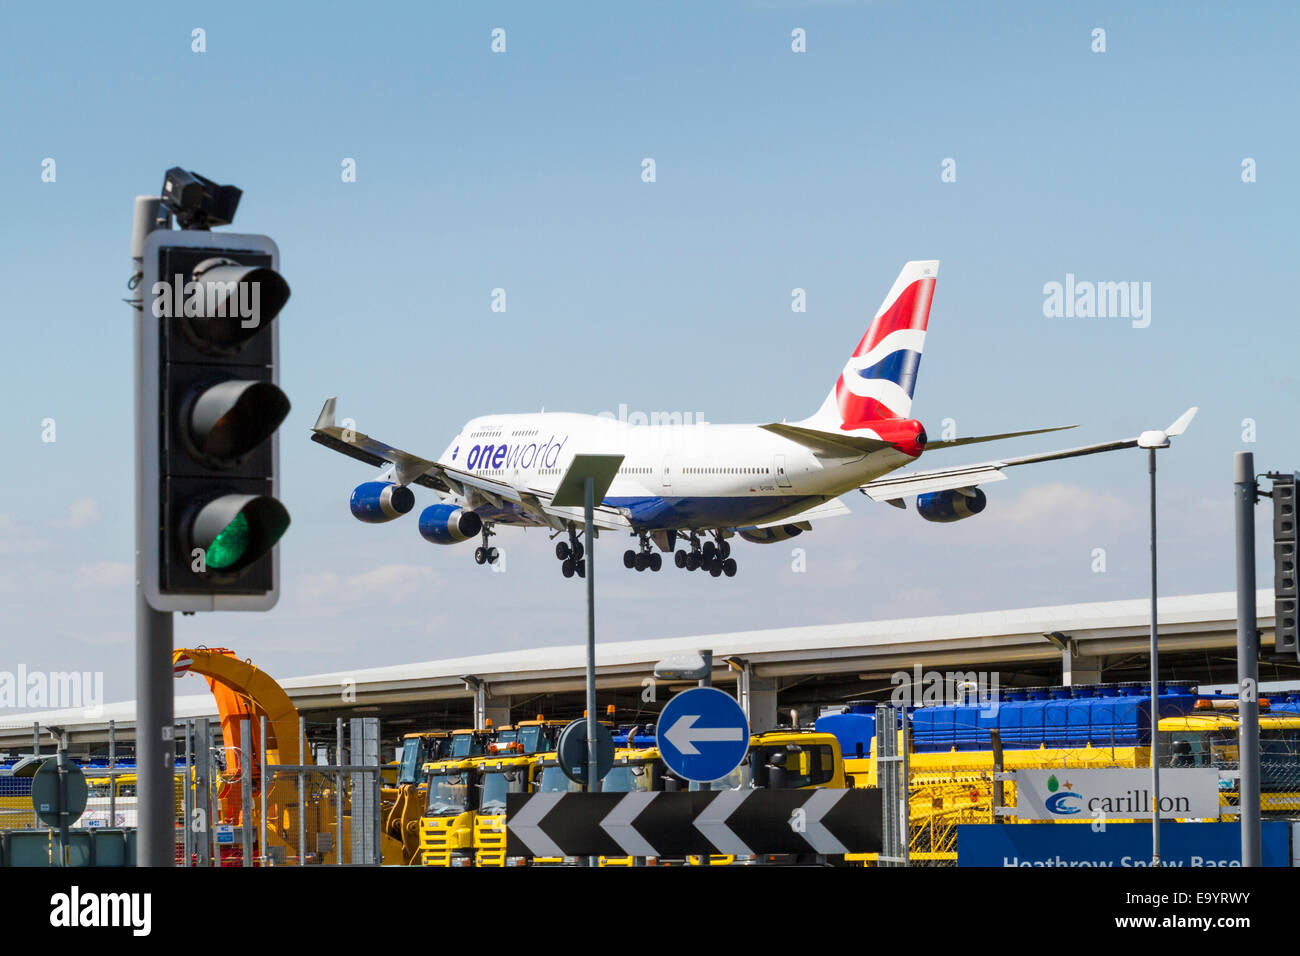 British Airways Boeing 747-436, G-CIVD, on its approach for landing at London Heathrow, England, UK - Stock Image